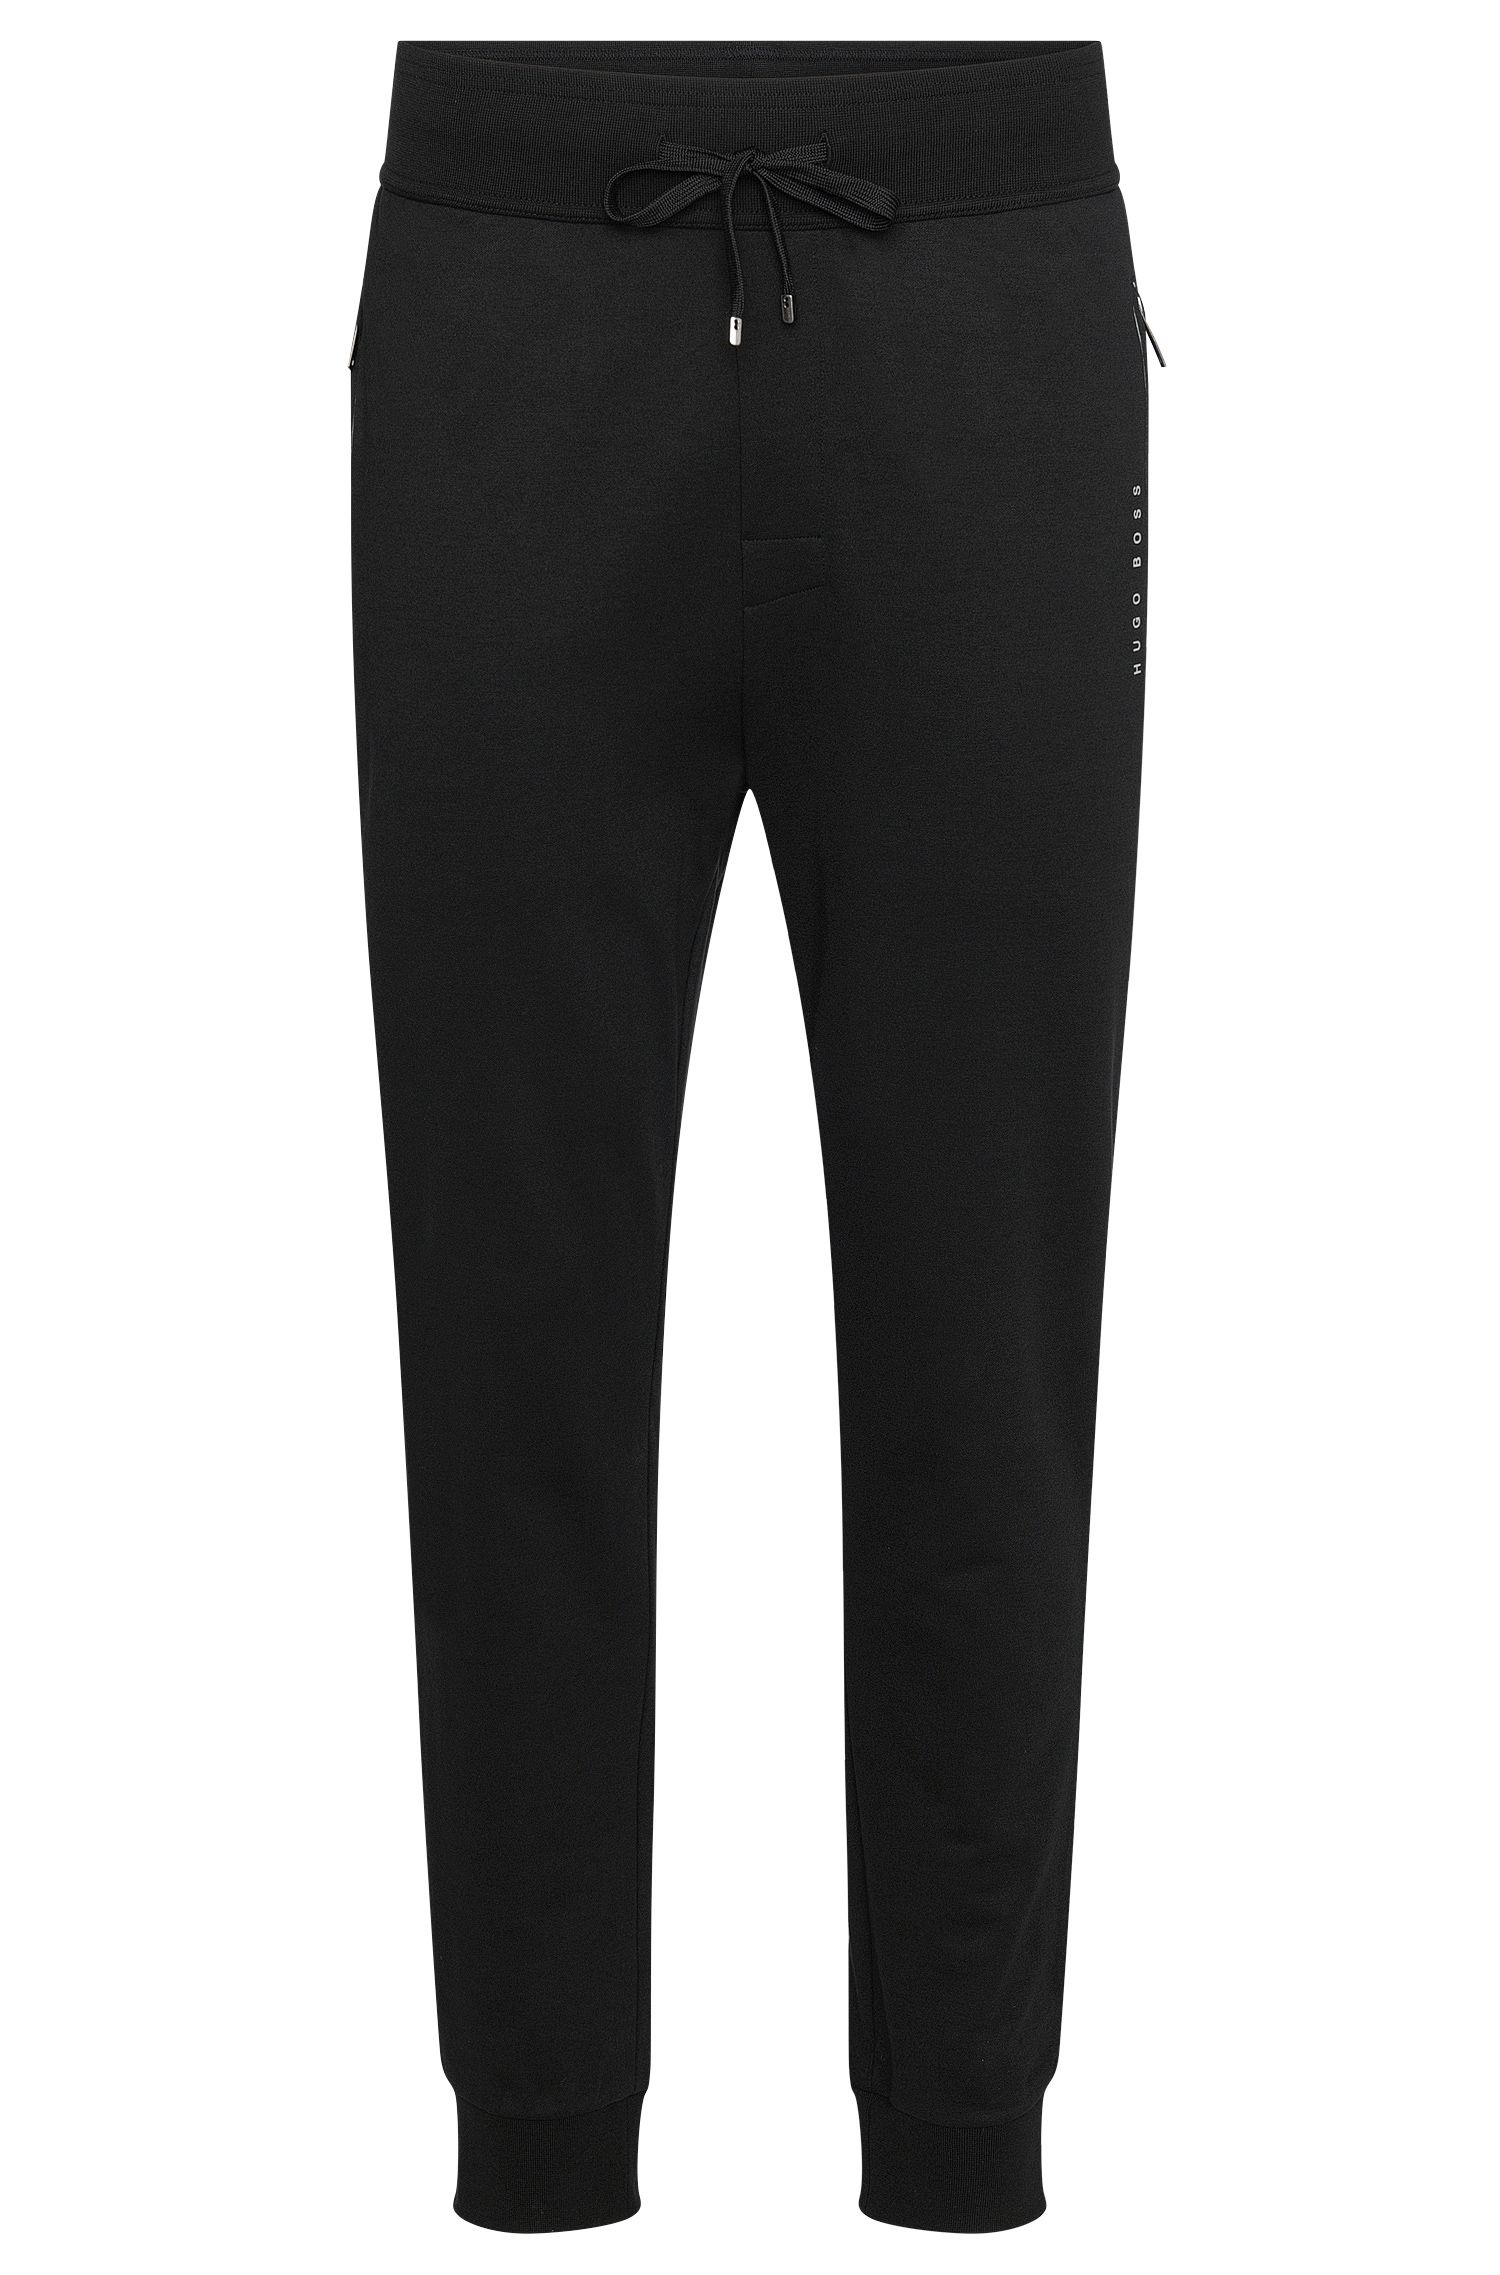 Unifarbene Jogginghose aus Baumwoll-Mix: 'Long Pant Cuffs'